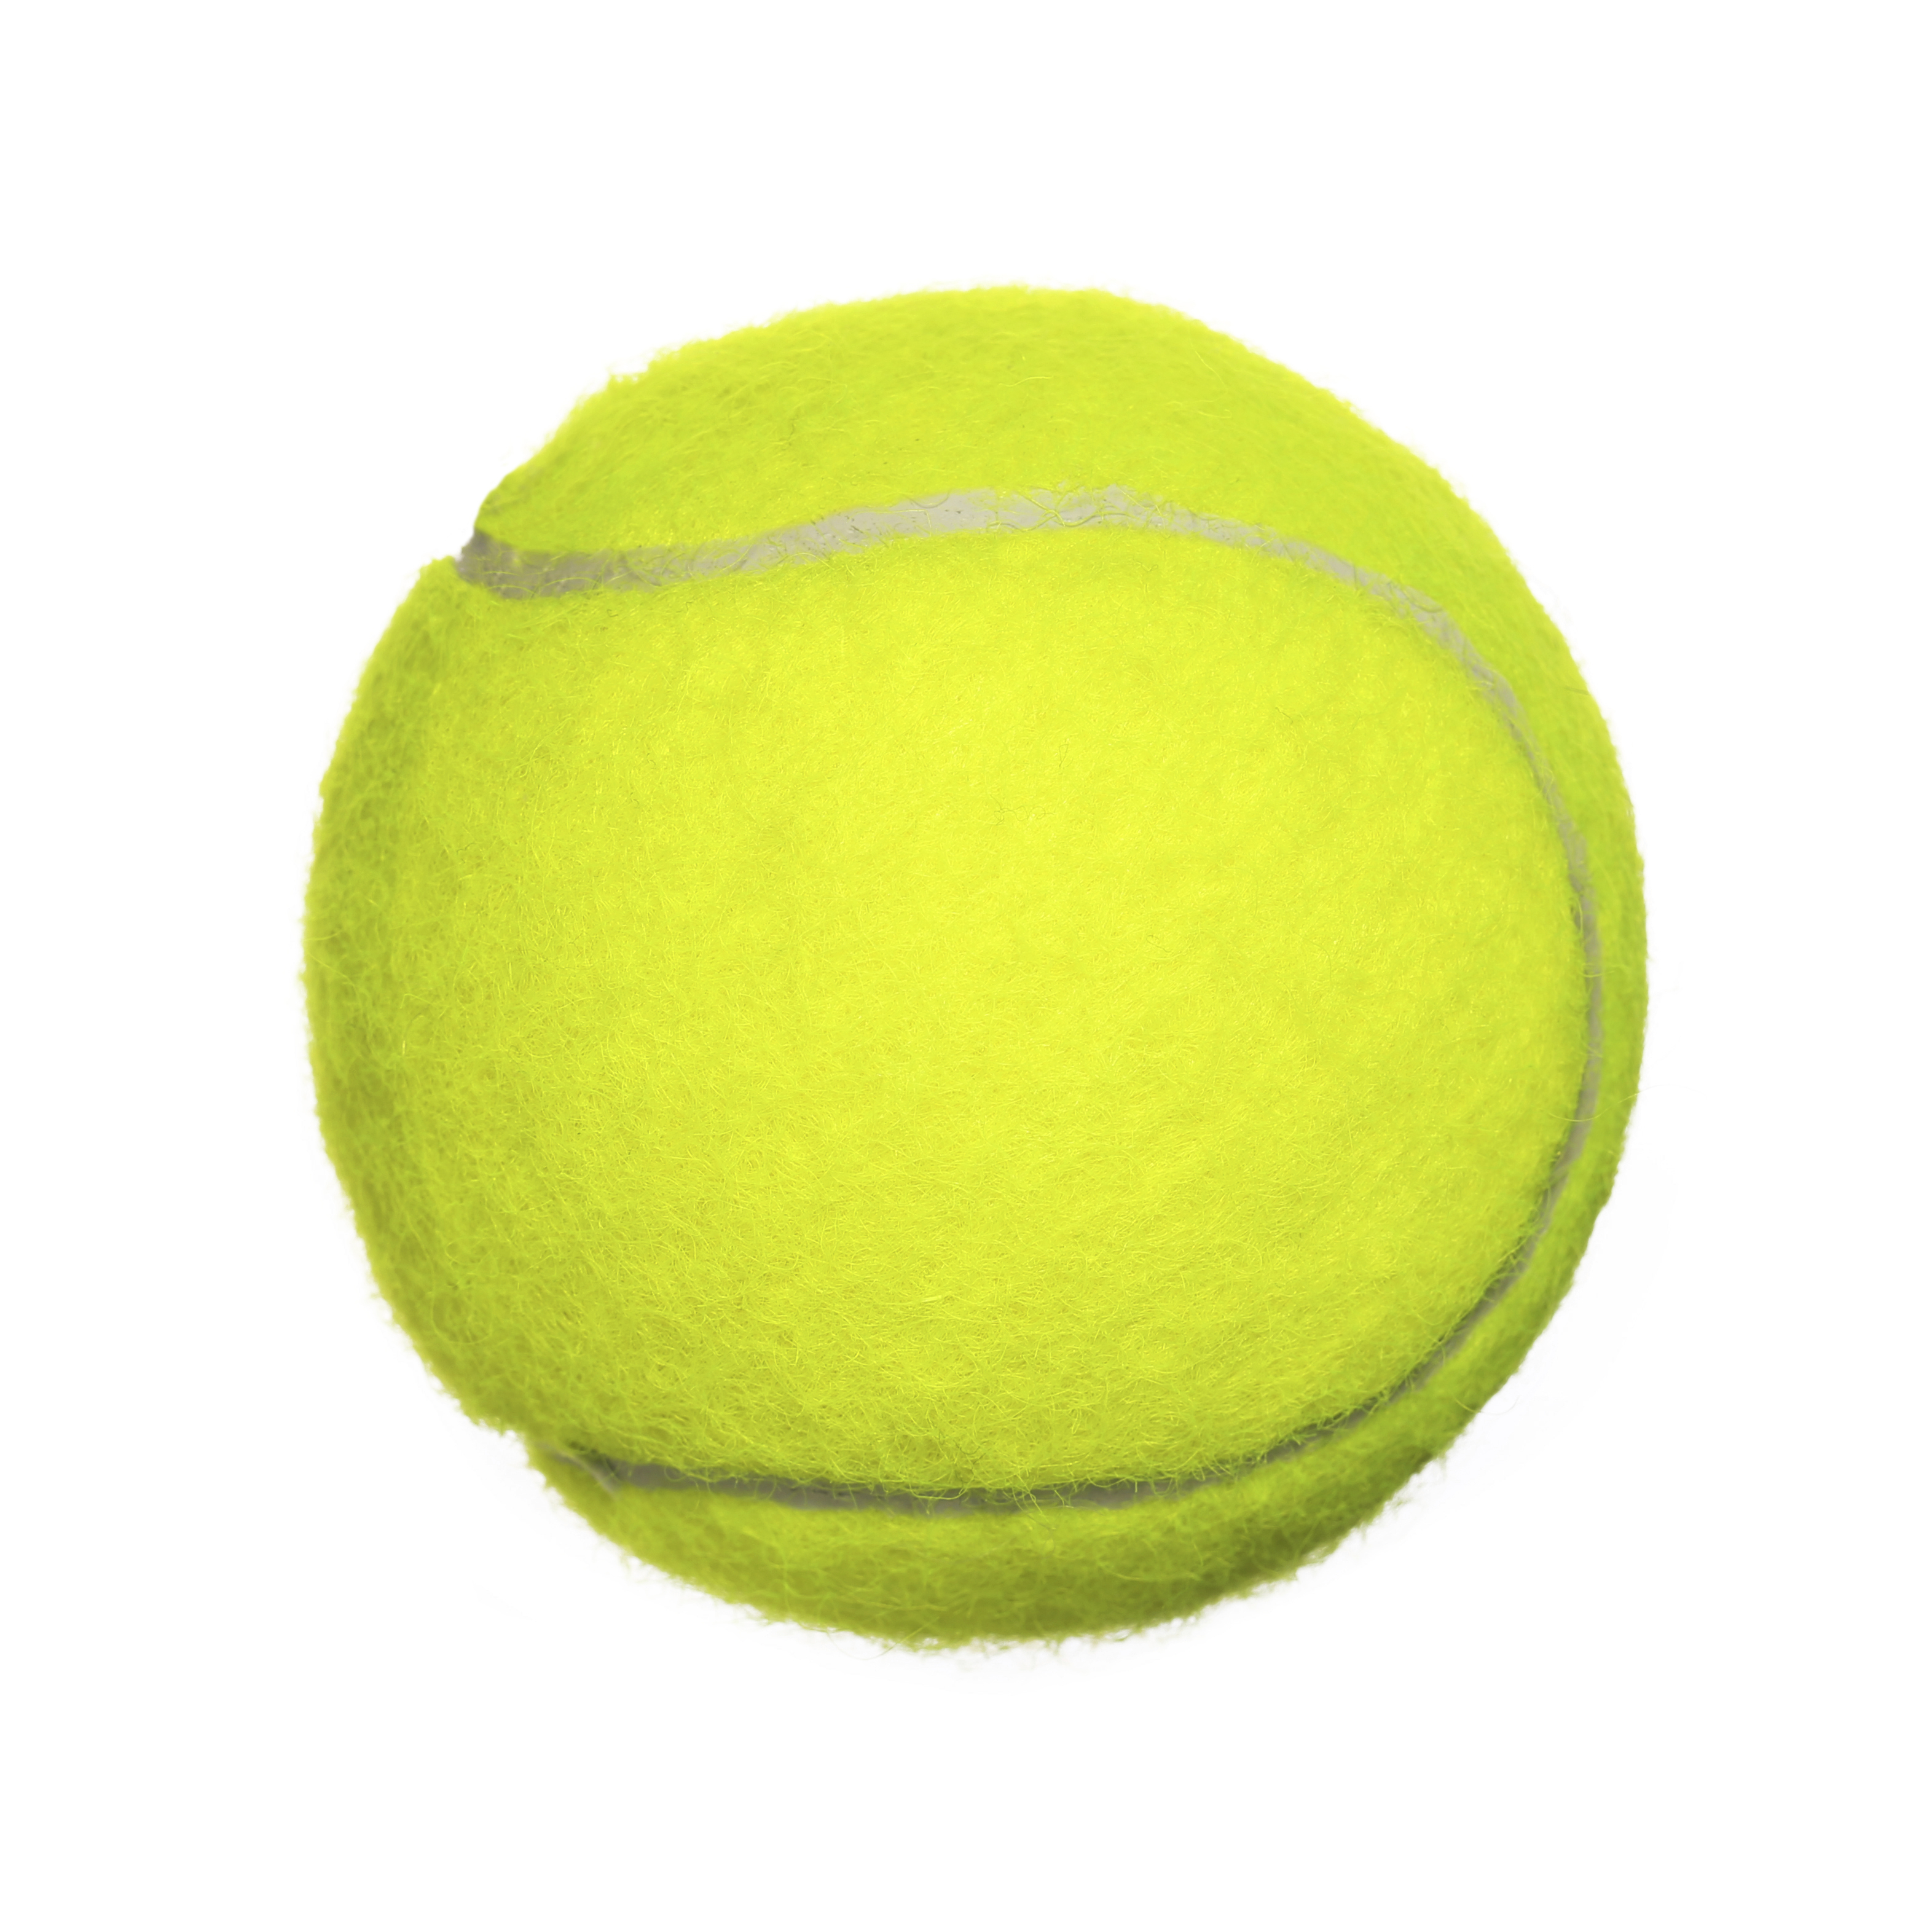 3144x3144 Tennis Ball Ball Collection Clipart